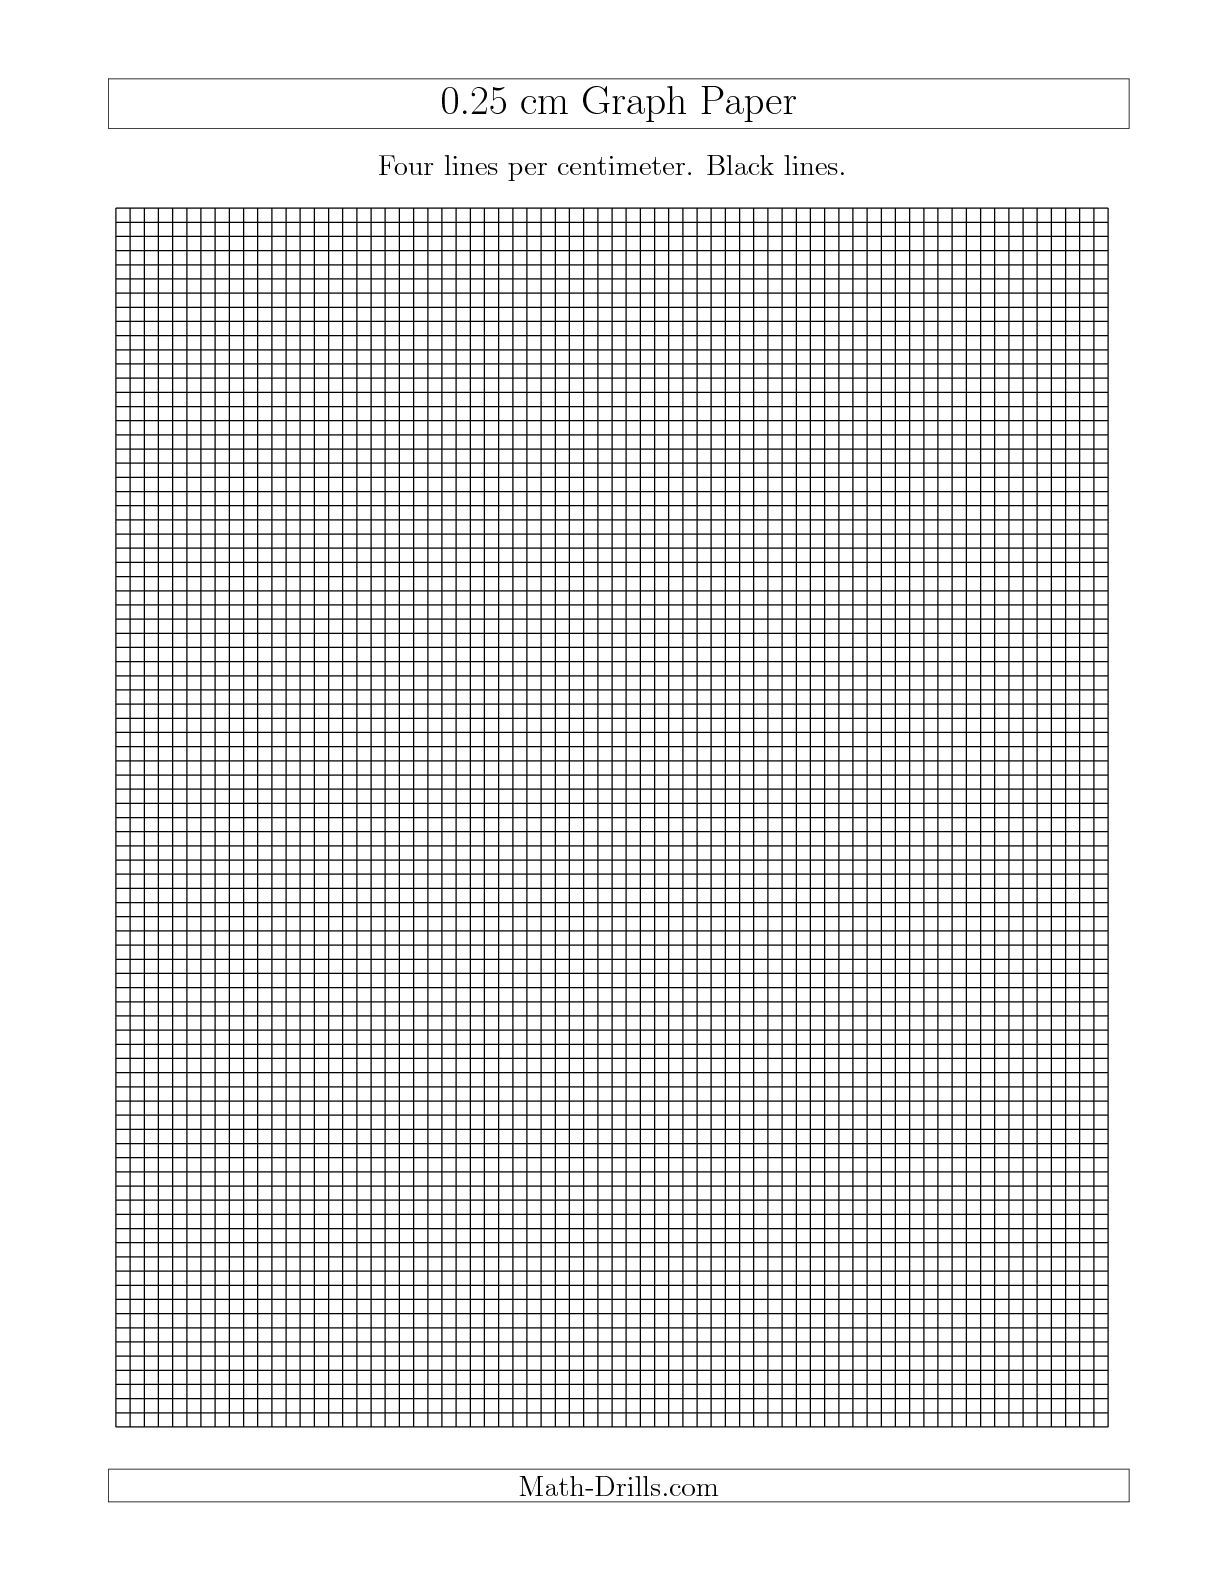 The 0 25 Cm Graph Paper With Black Lines A